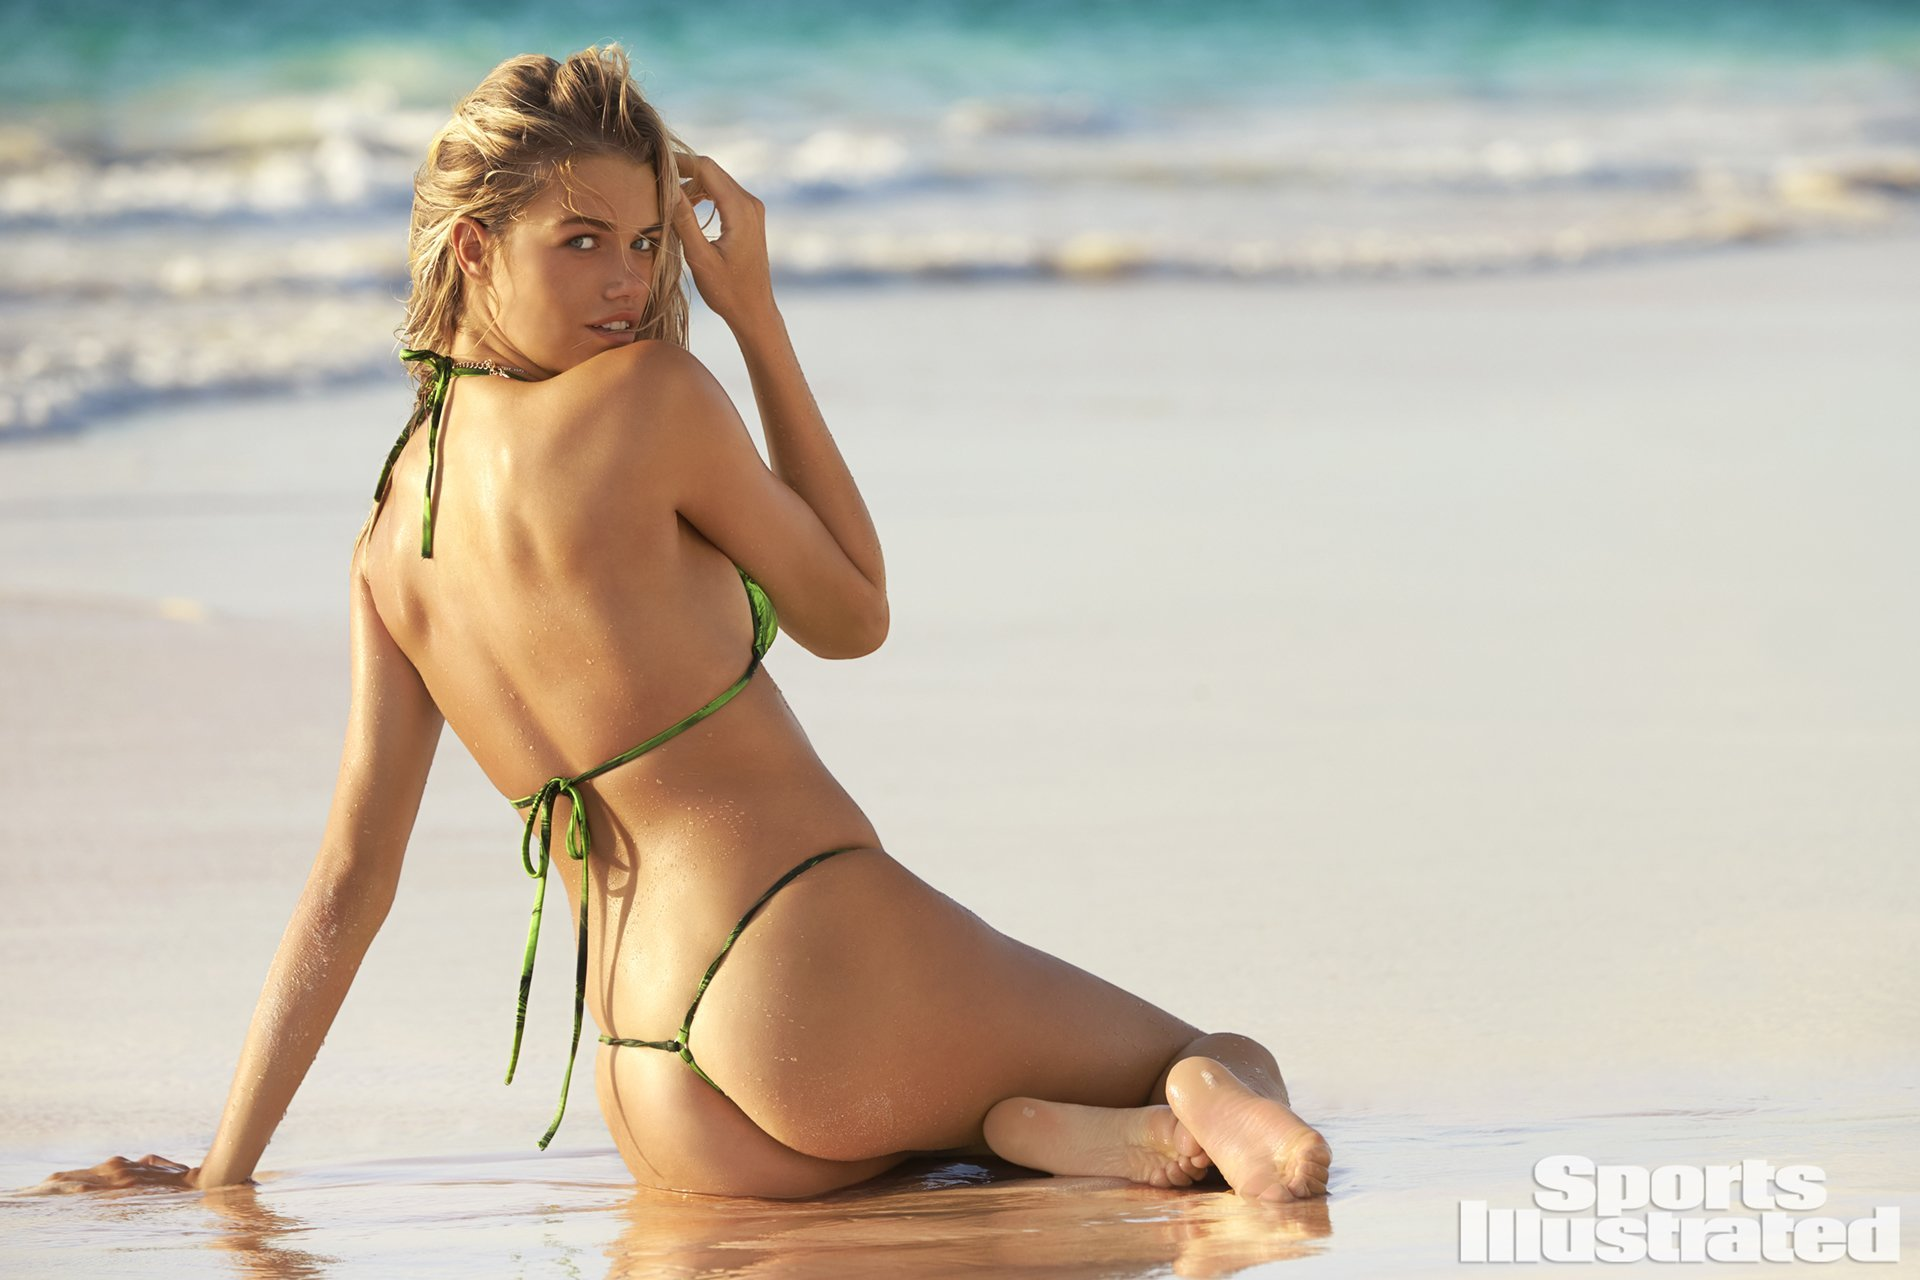 Hailey Clauson - Sports Illustrated Swimsuit Issue (2018)